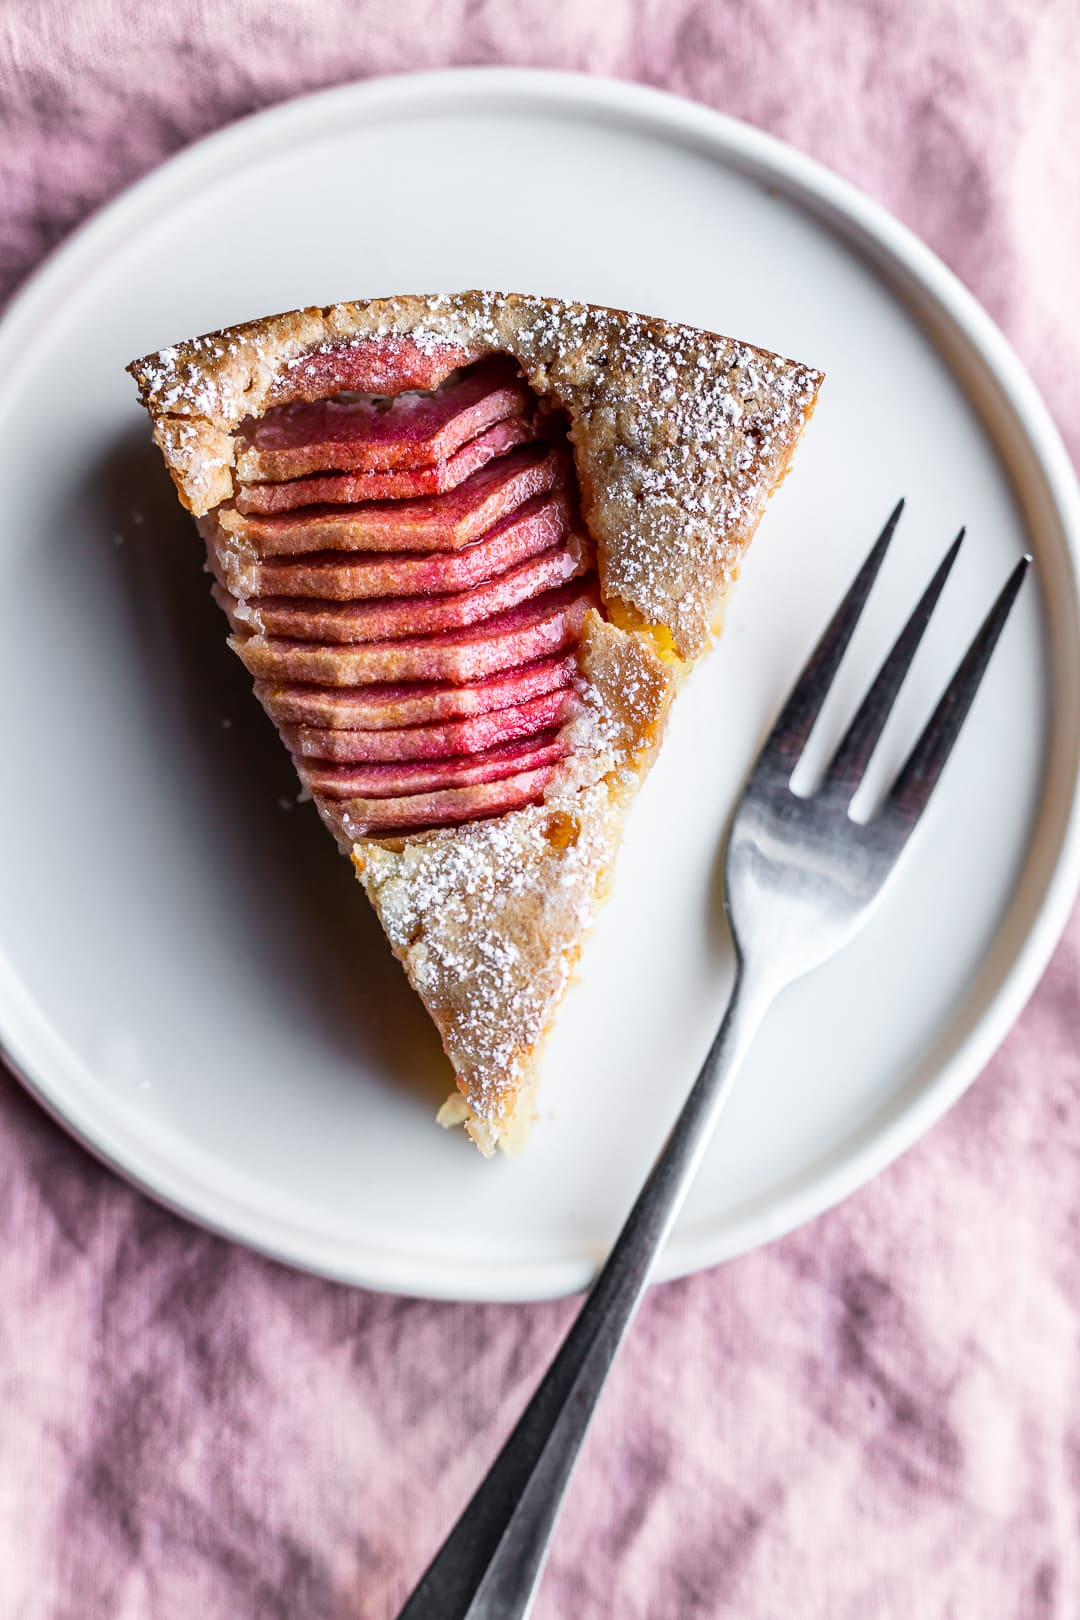 Slice of almond cake with sliced pink apples on a white plate on a pink napkin